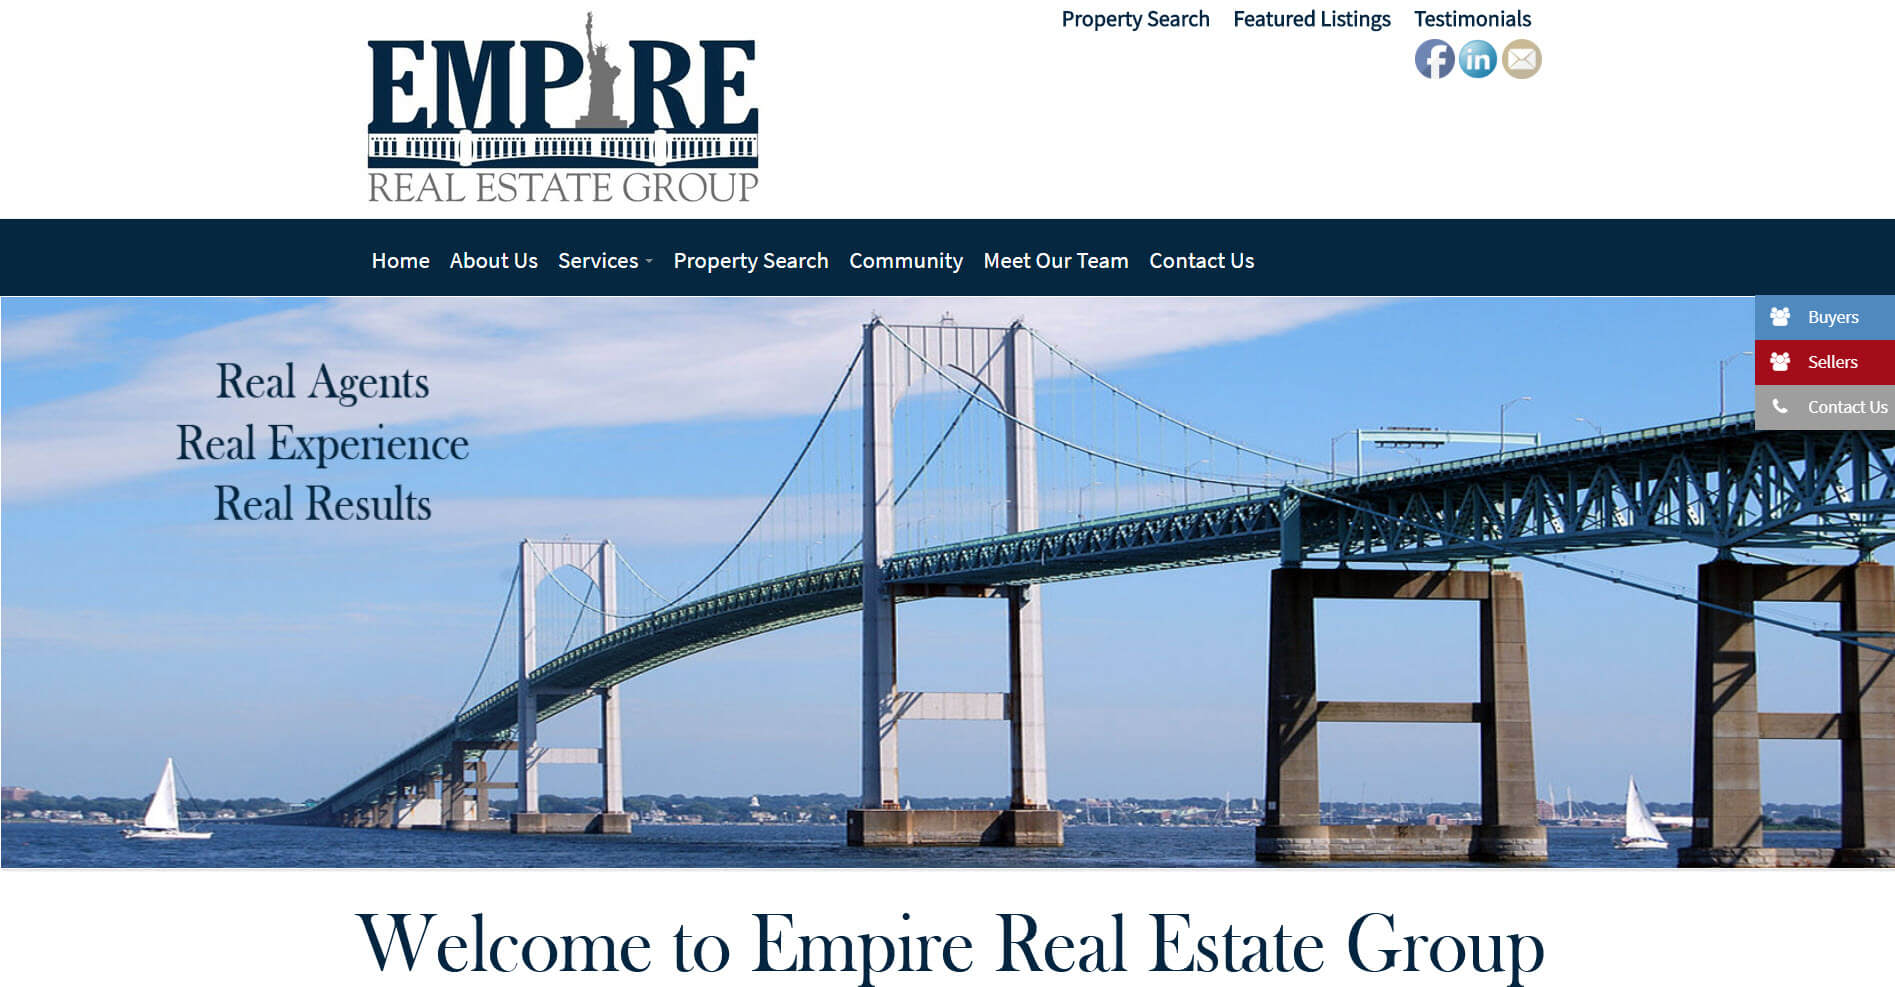 Empire Website Design